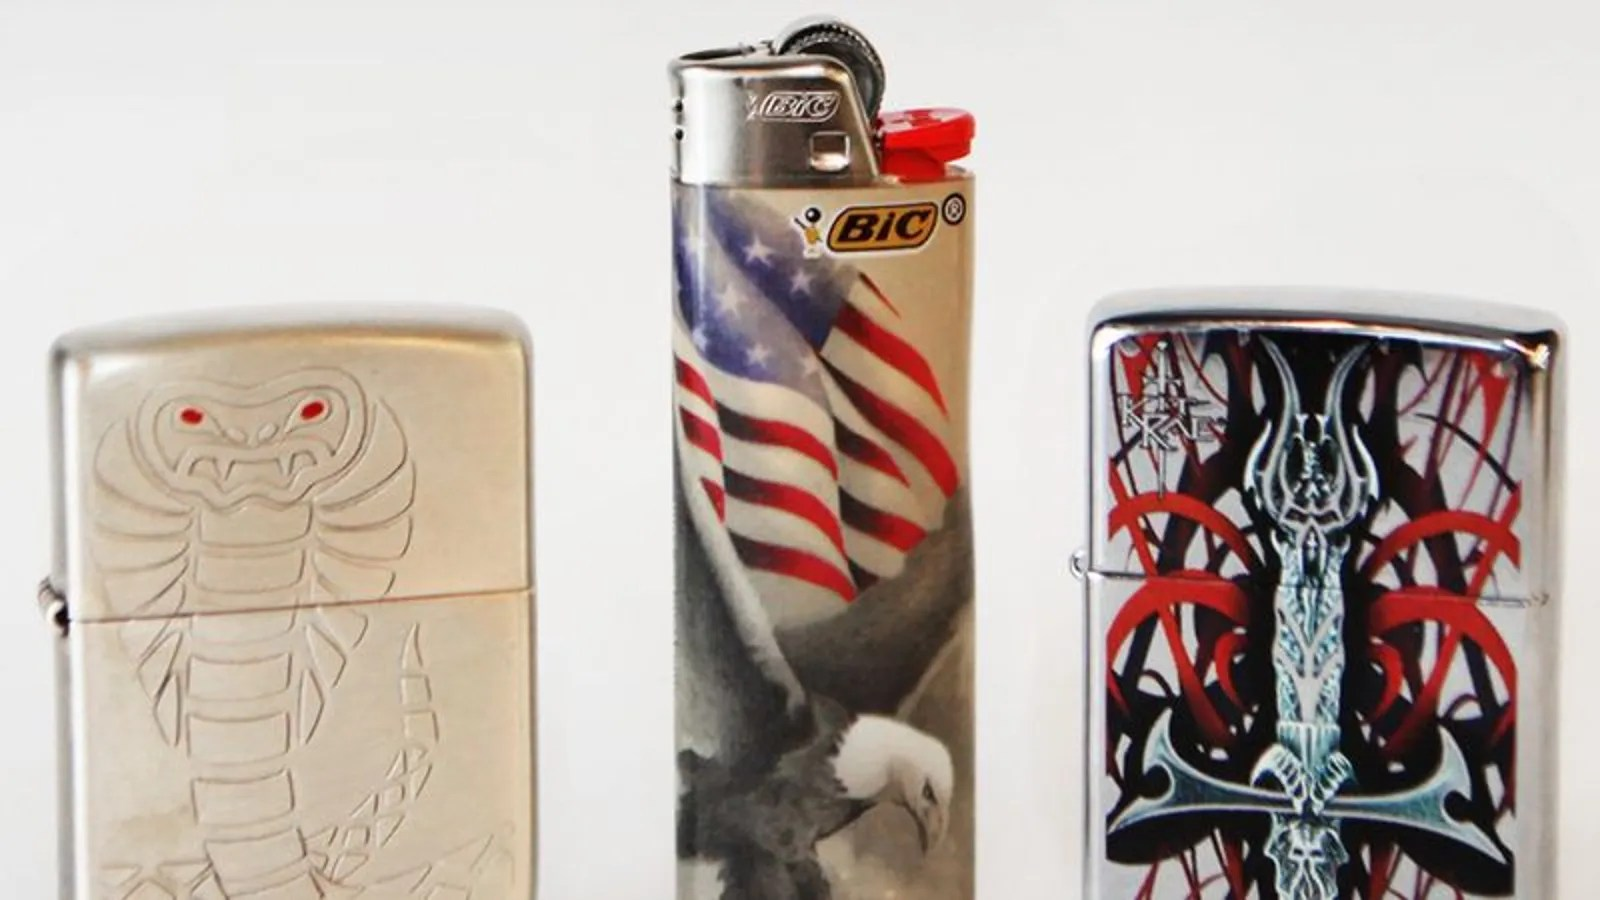 3 cool lighters we